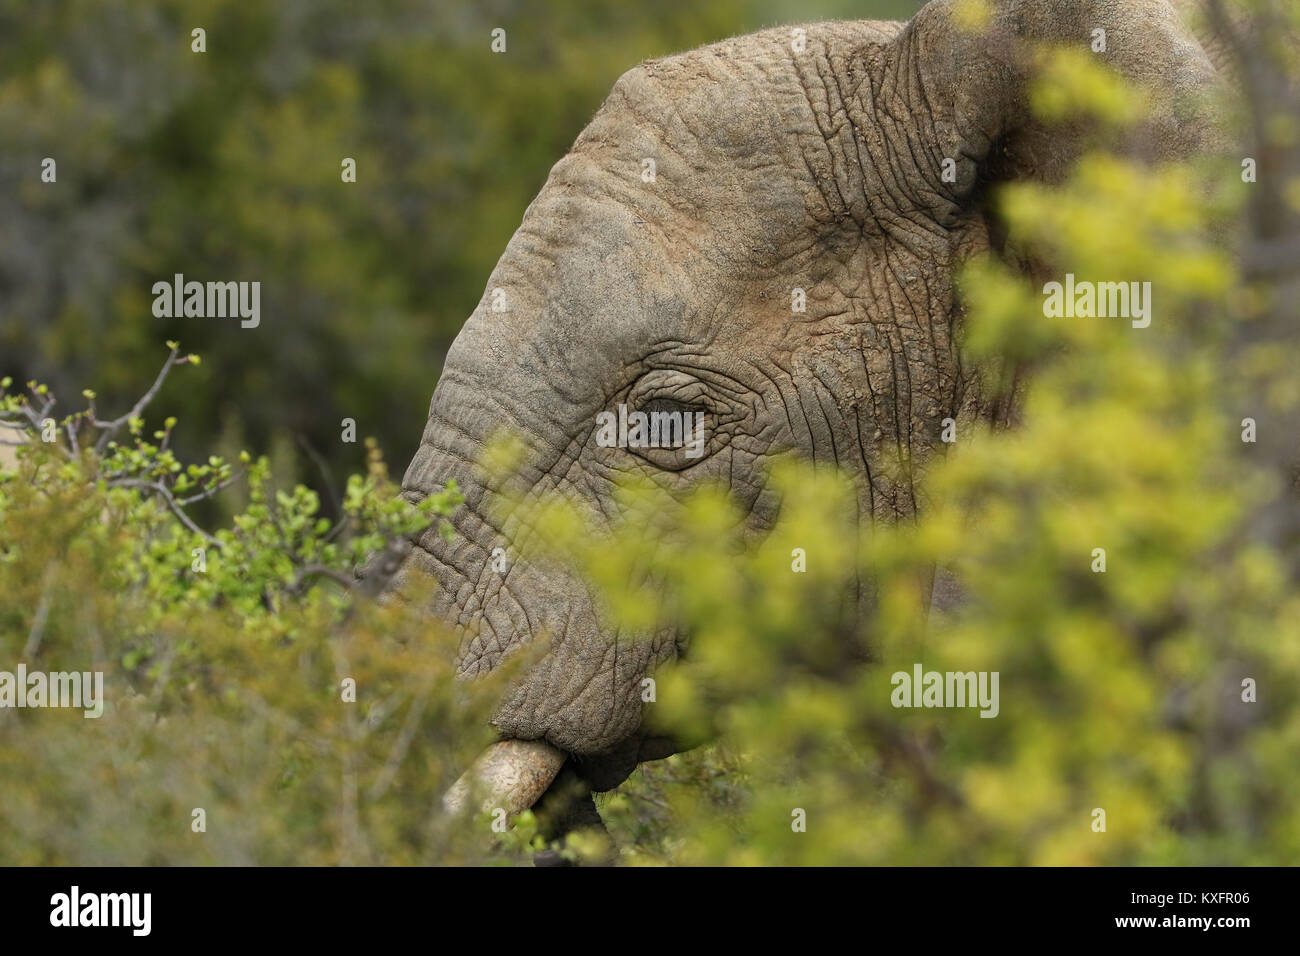 Close up of Elephants in the Addo Elephants National Park, South Africa. - Stock Image